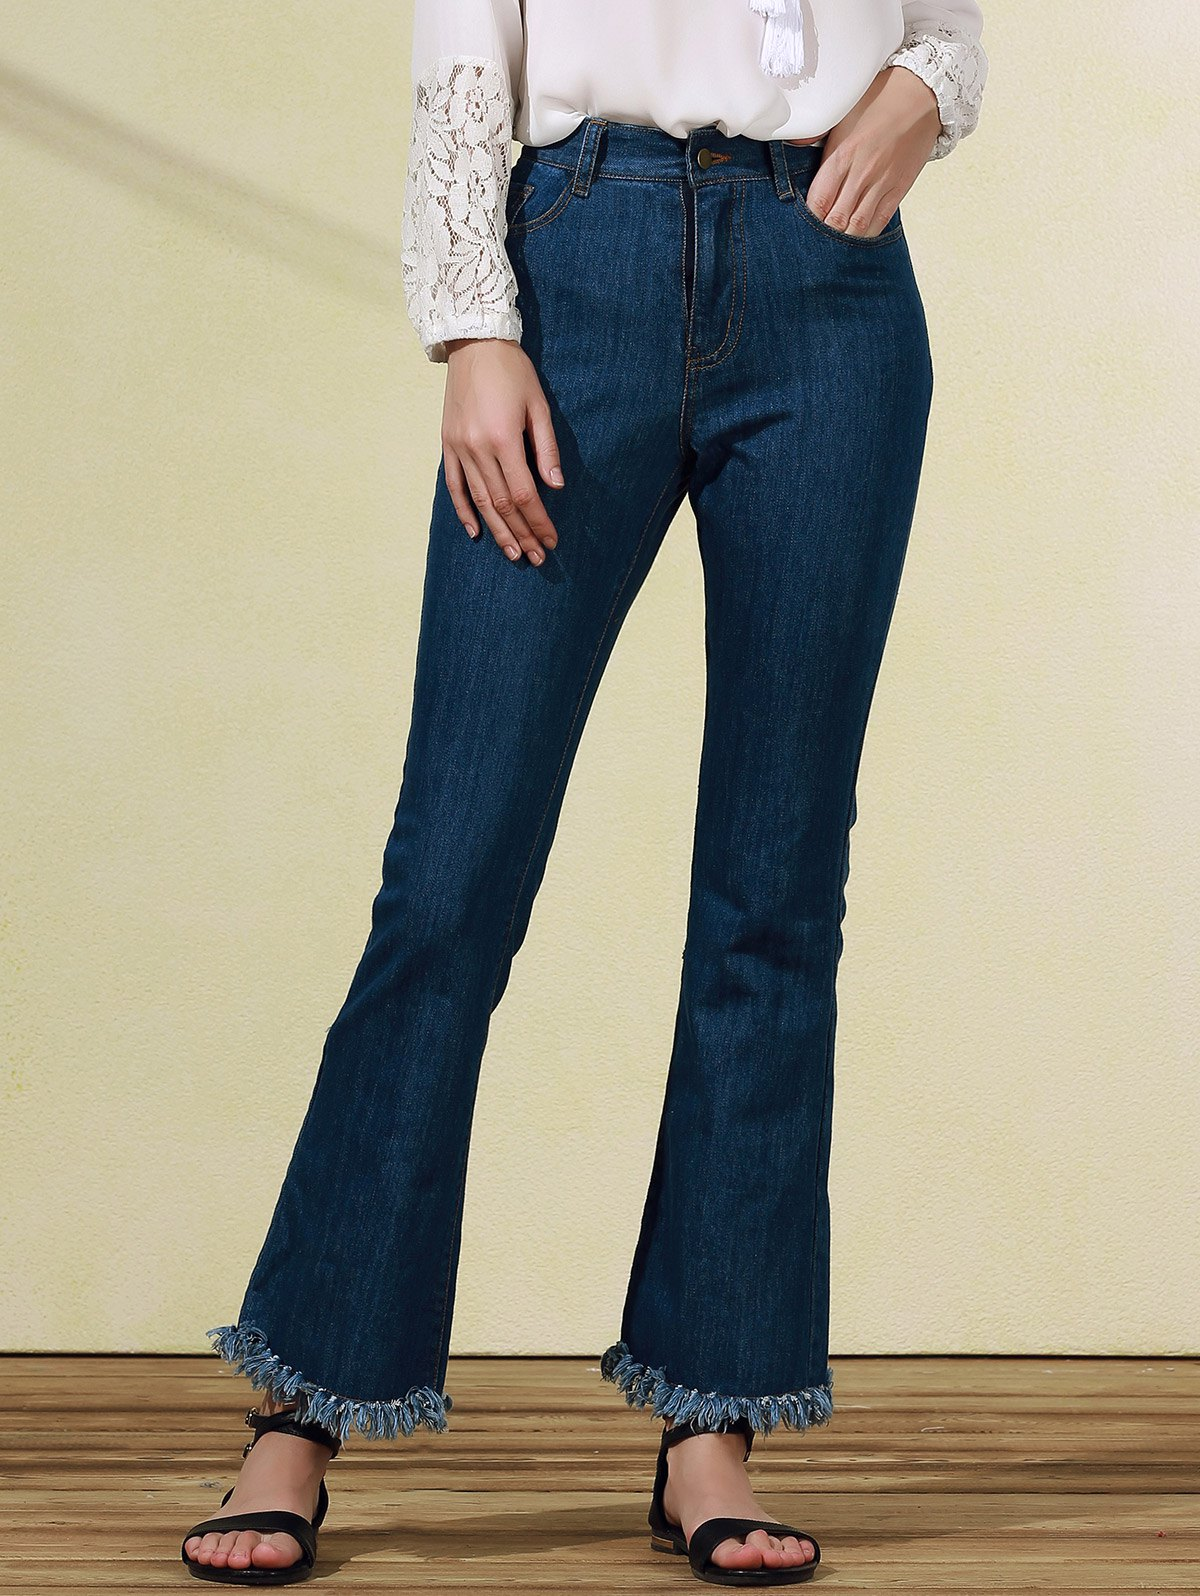 http://www.zaful.com/frayed-blue-boot-cut-jeans-p_188314.html